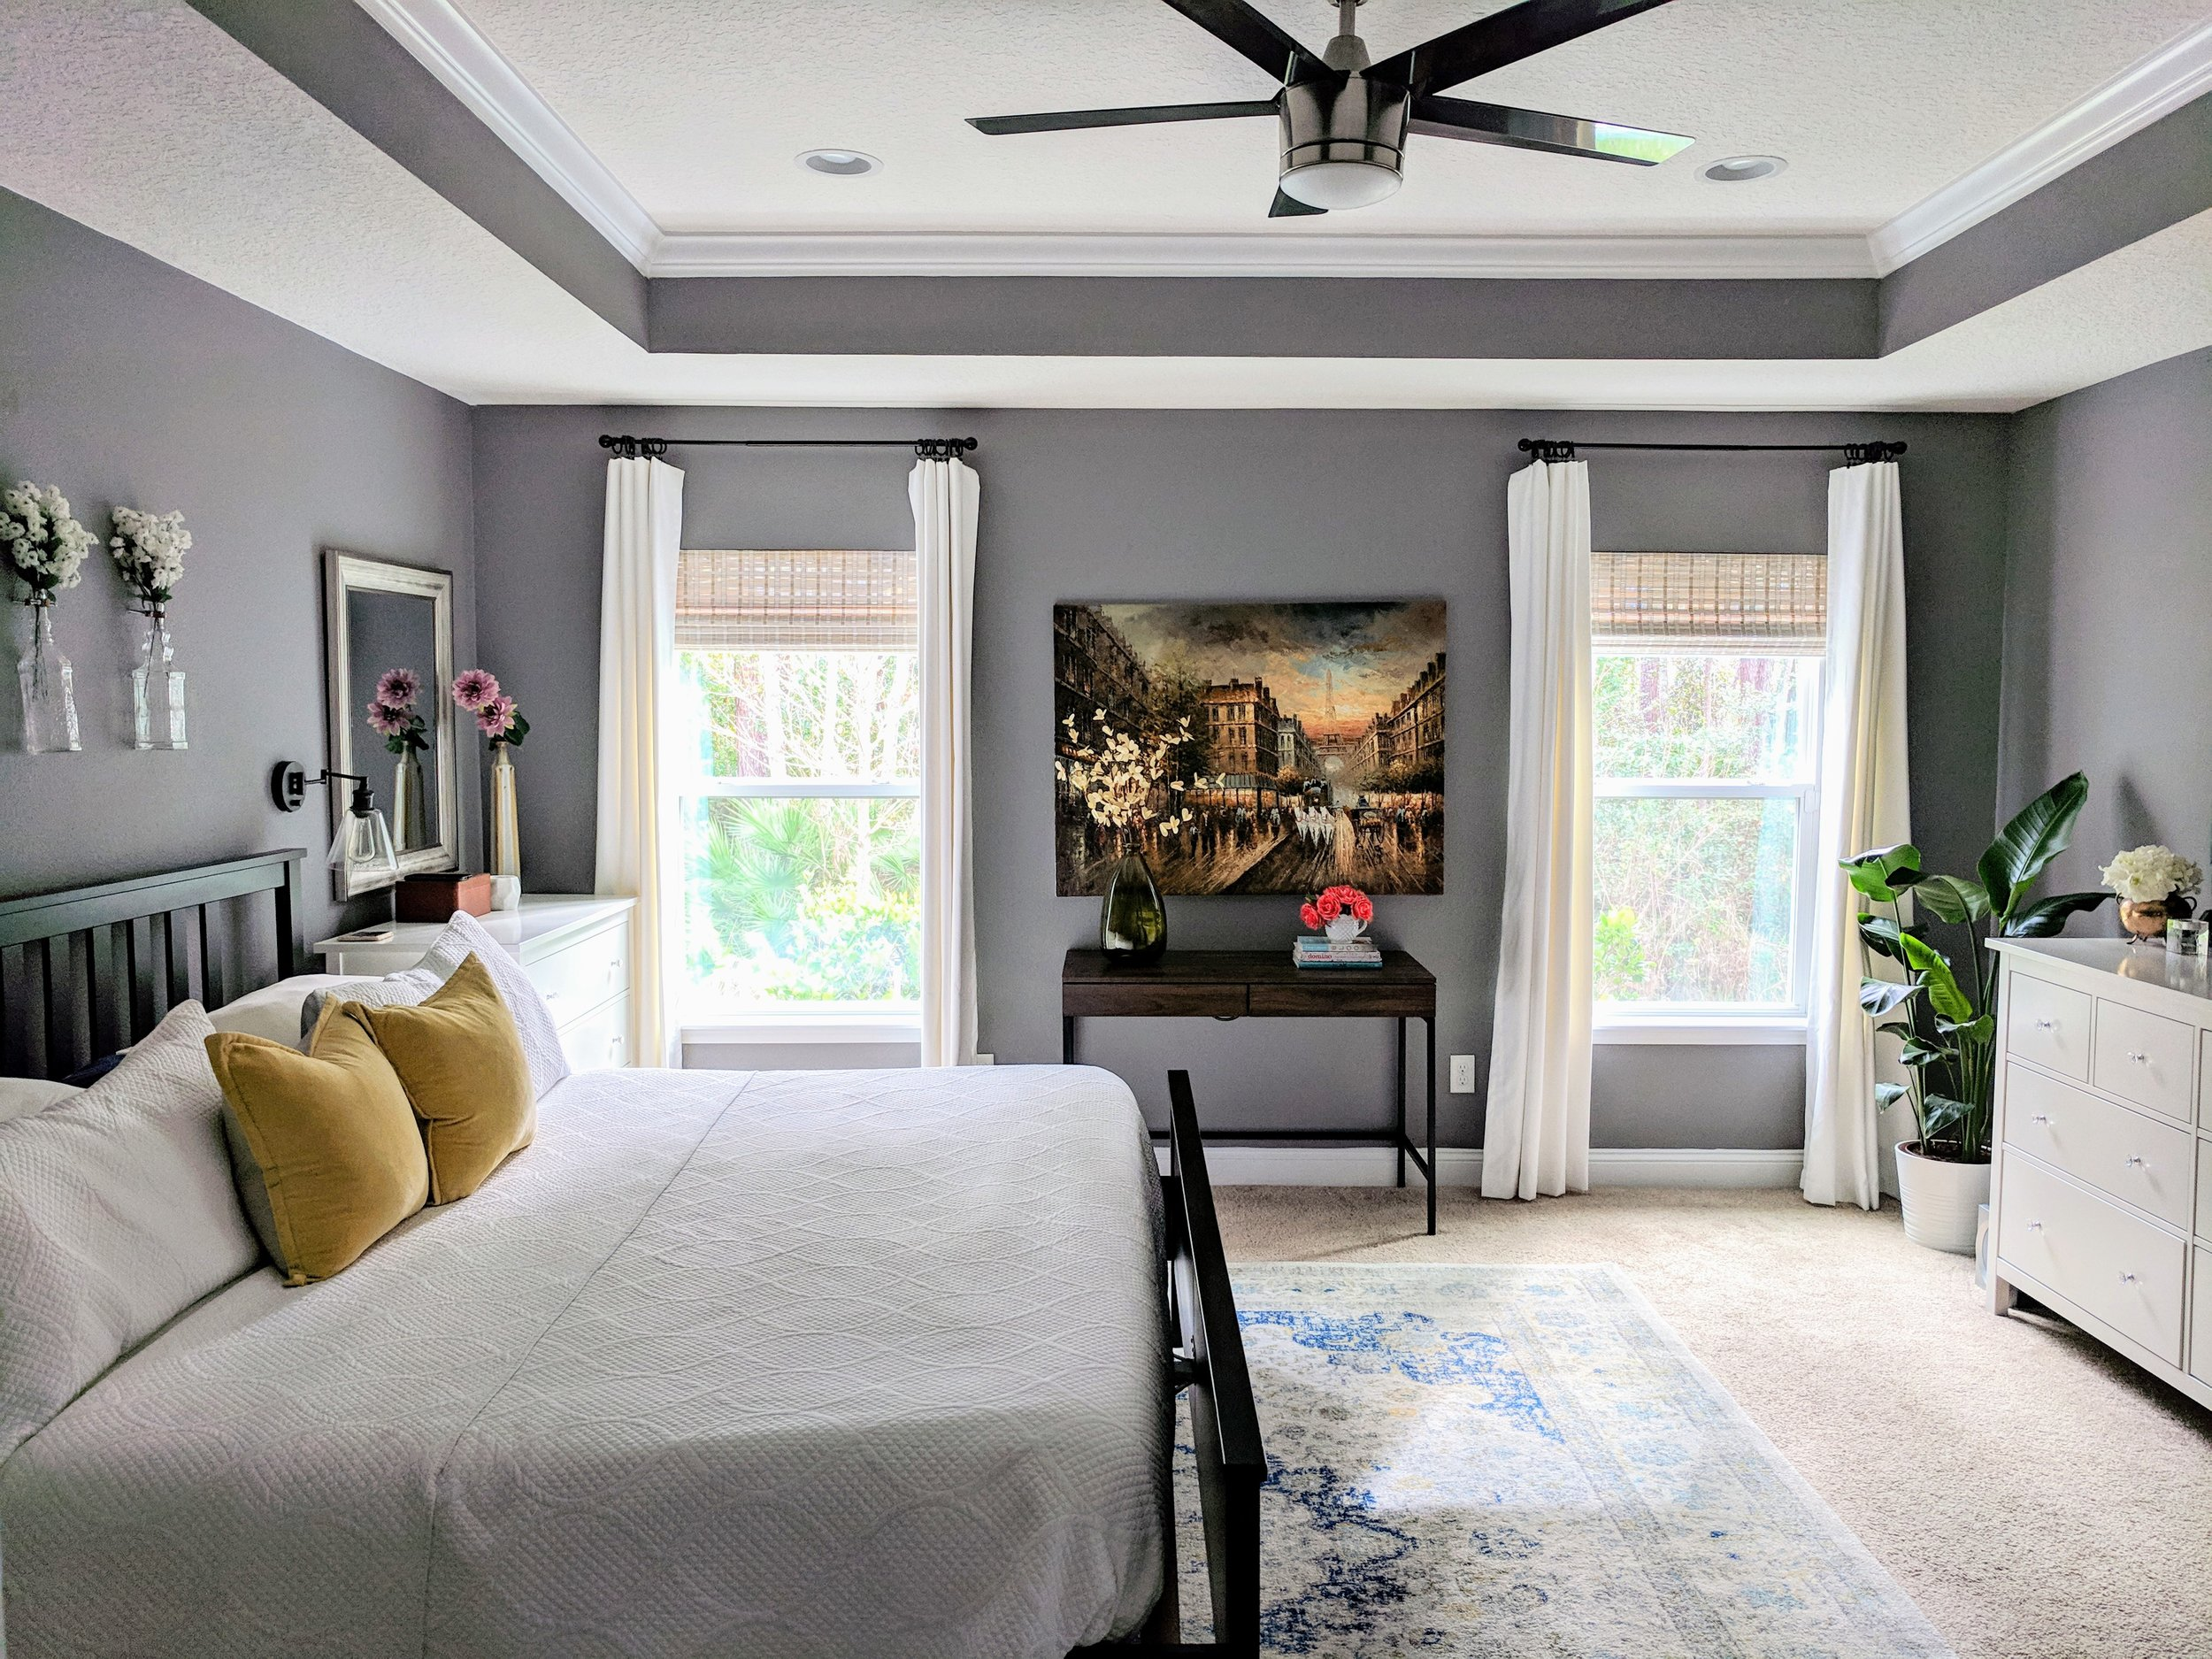 refreshing a master bedroom on a budget